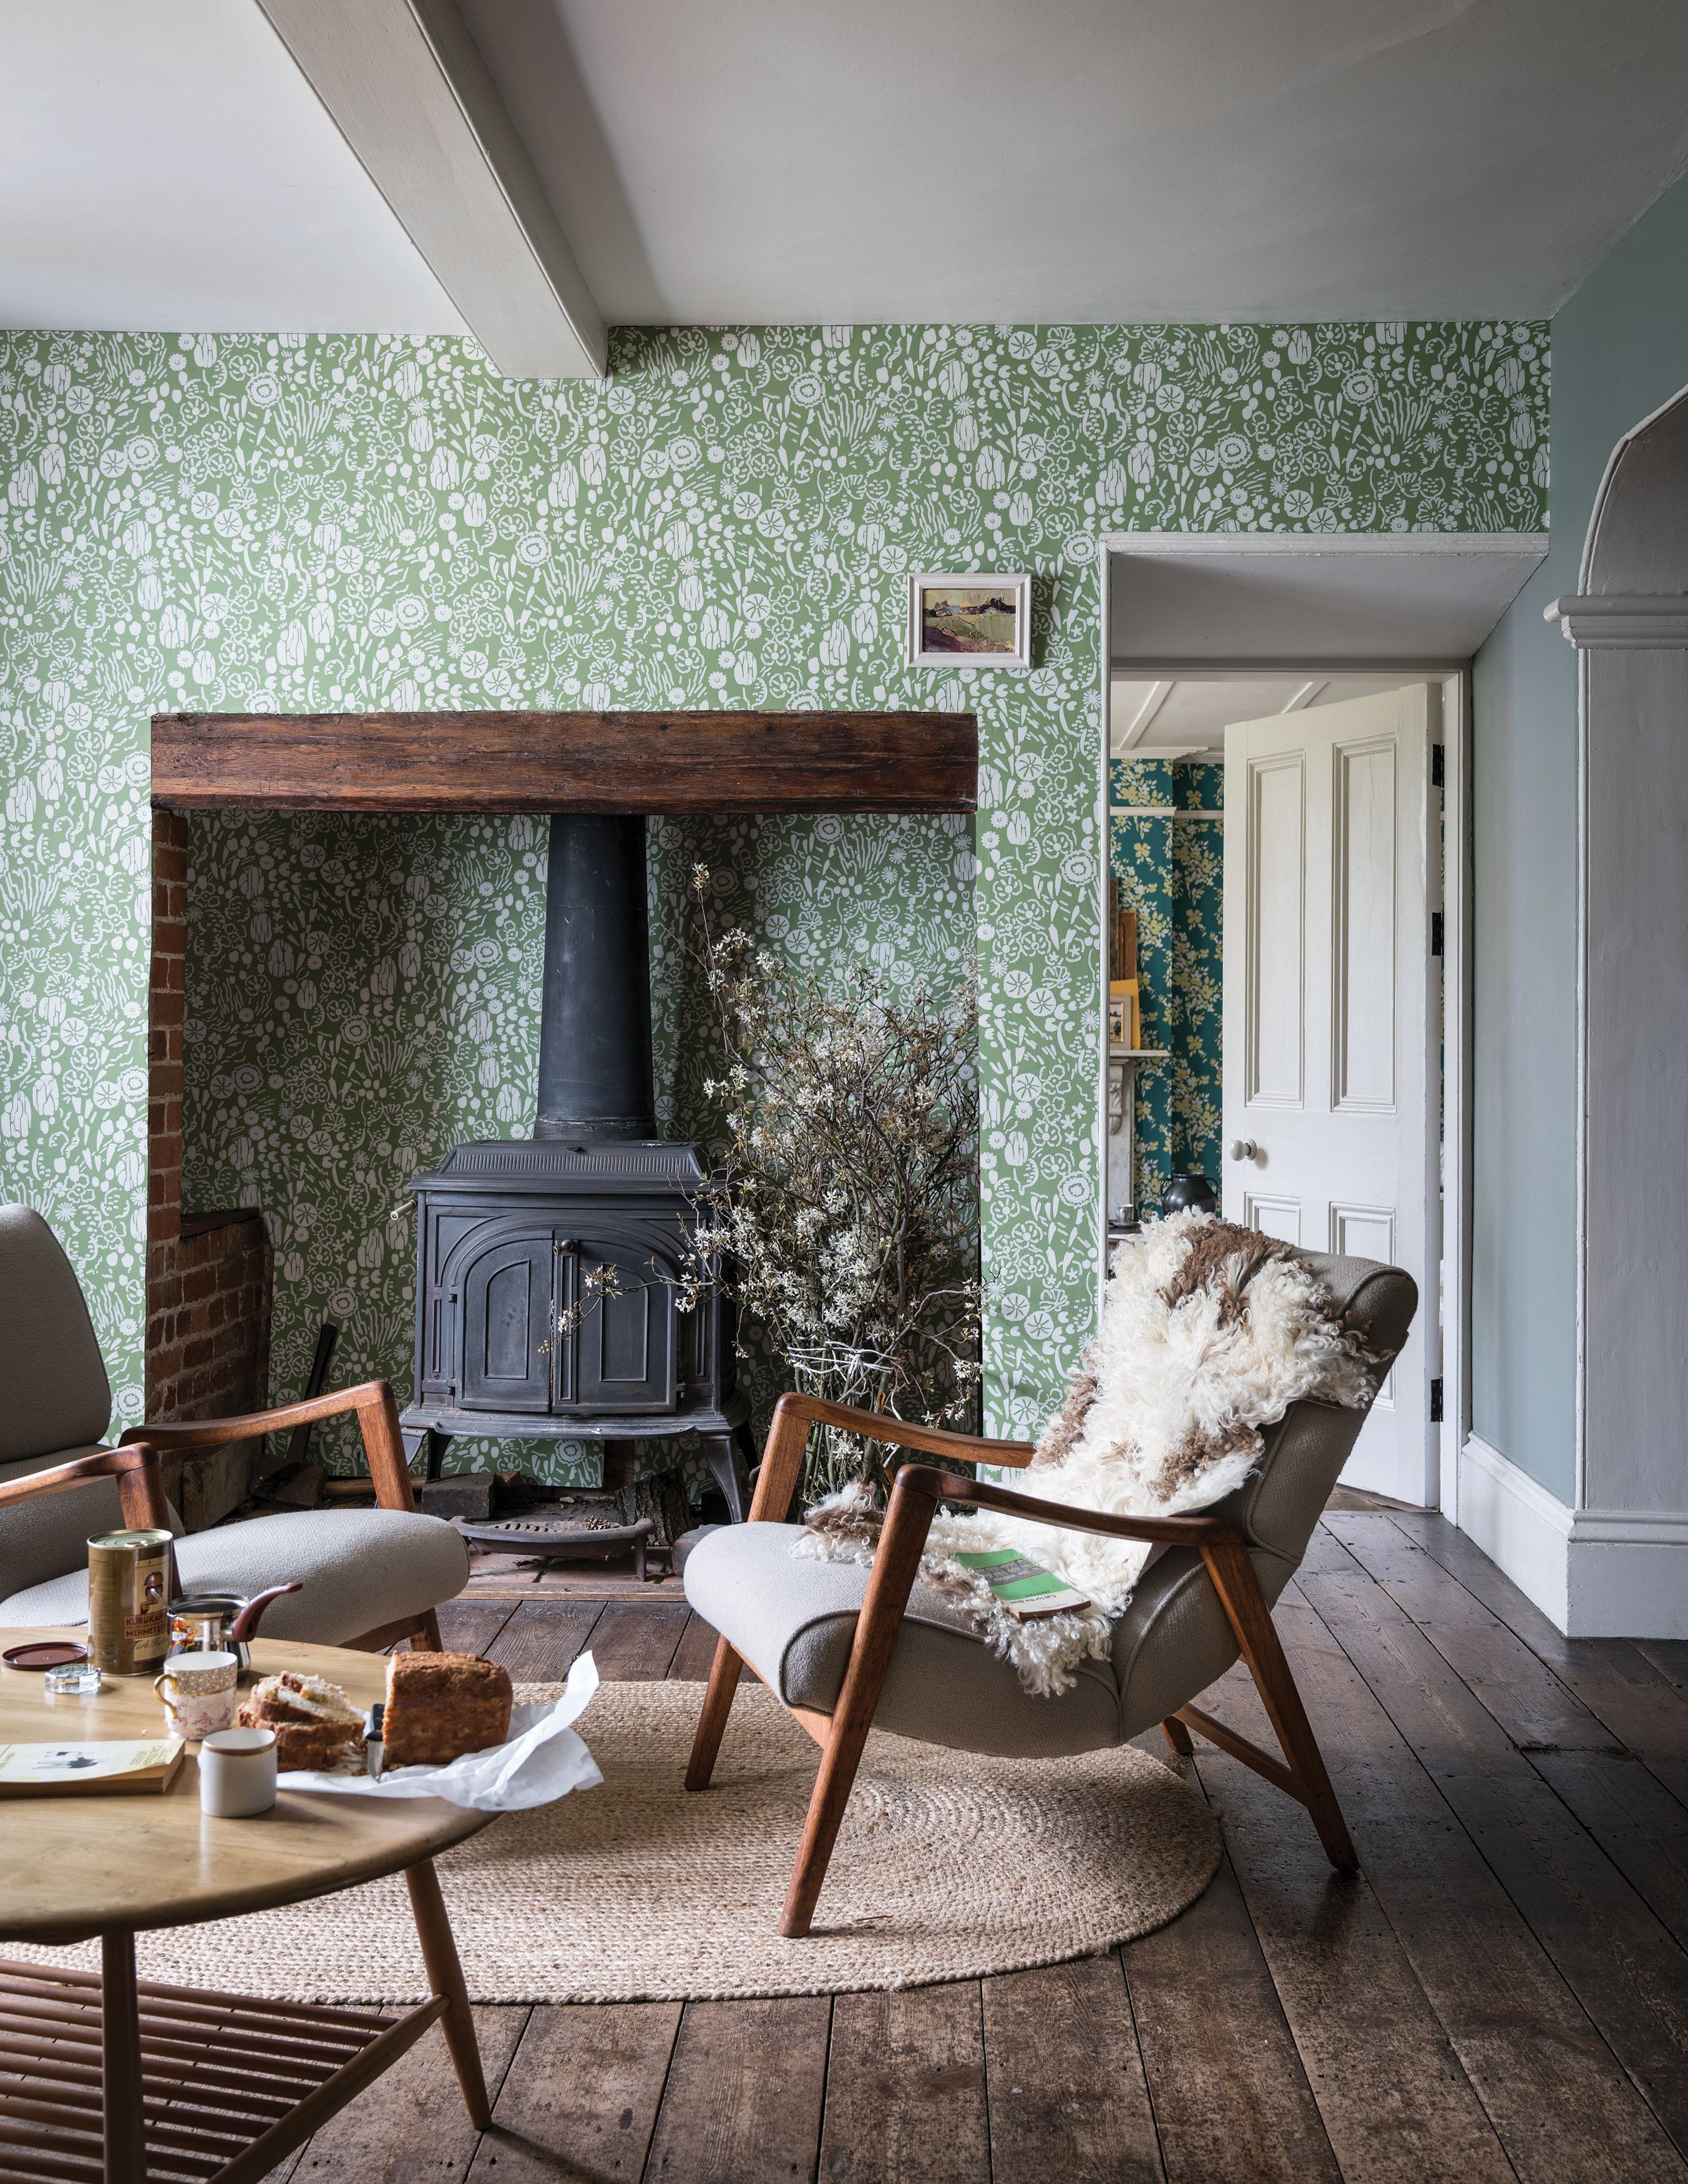 16 Beautiful Botanical Wallpaper Designs For Your Home